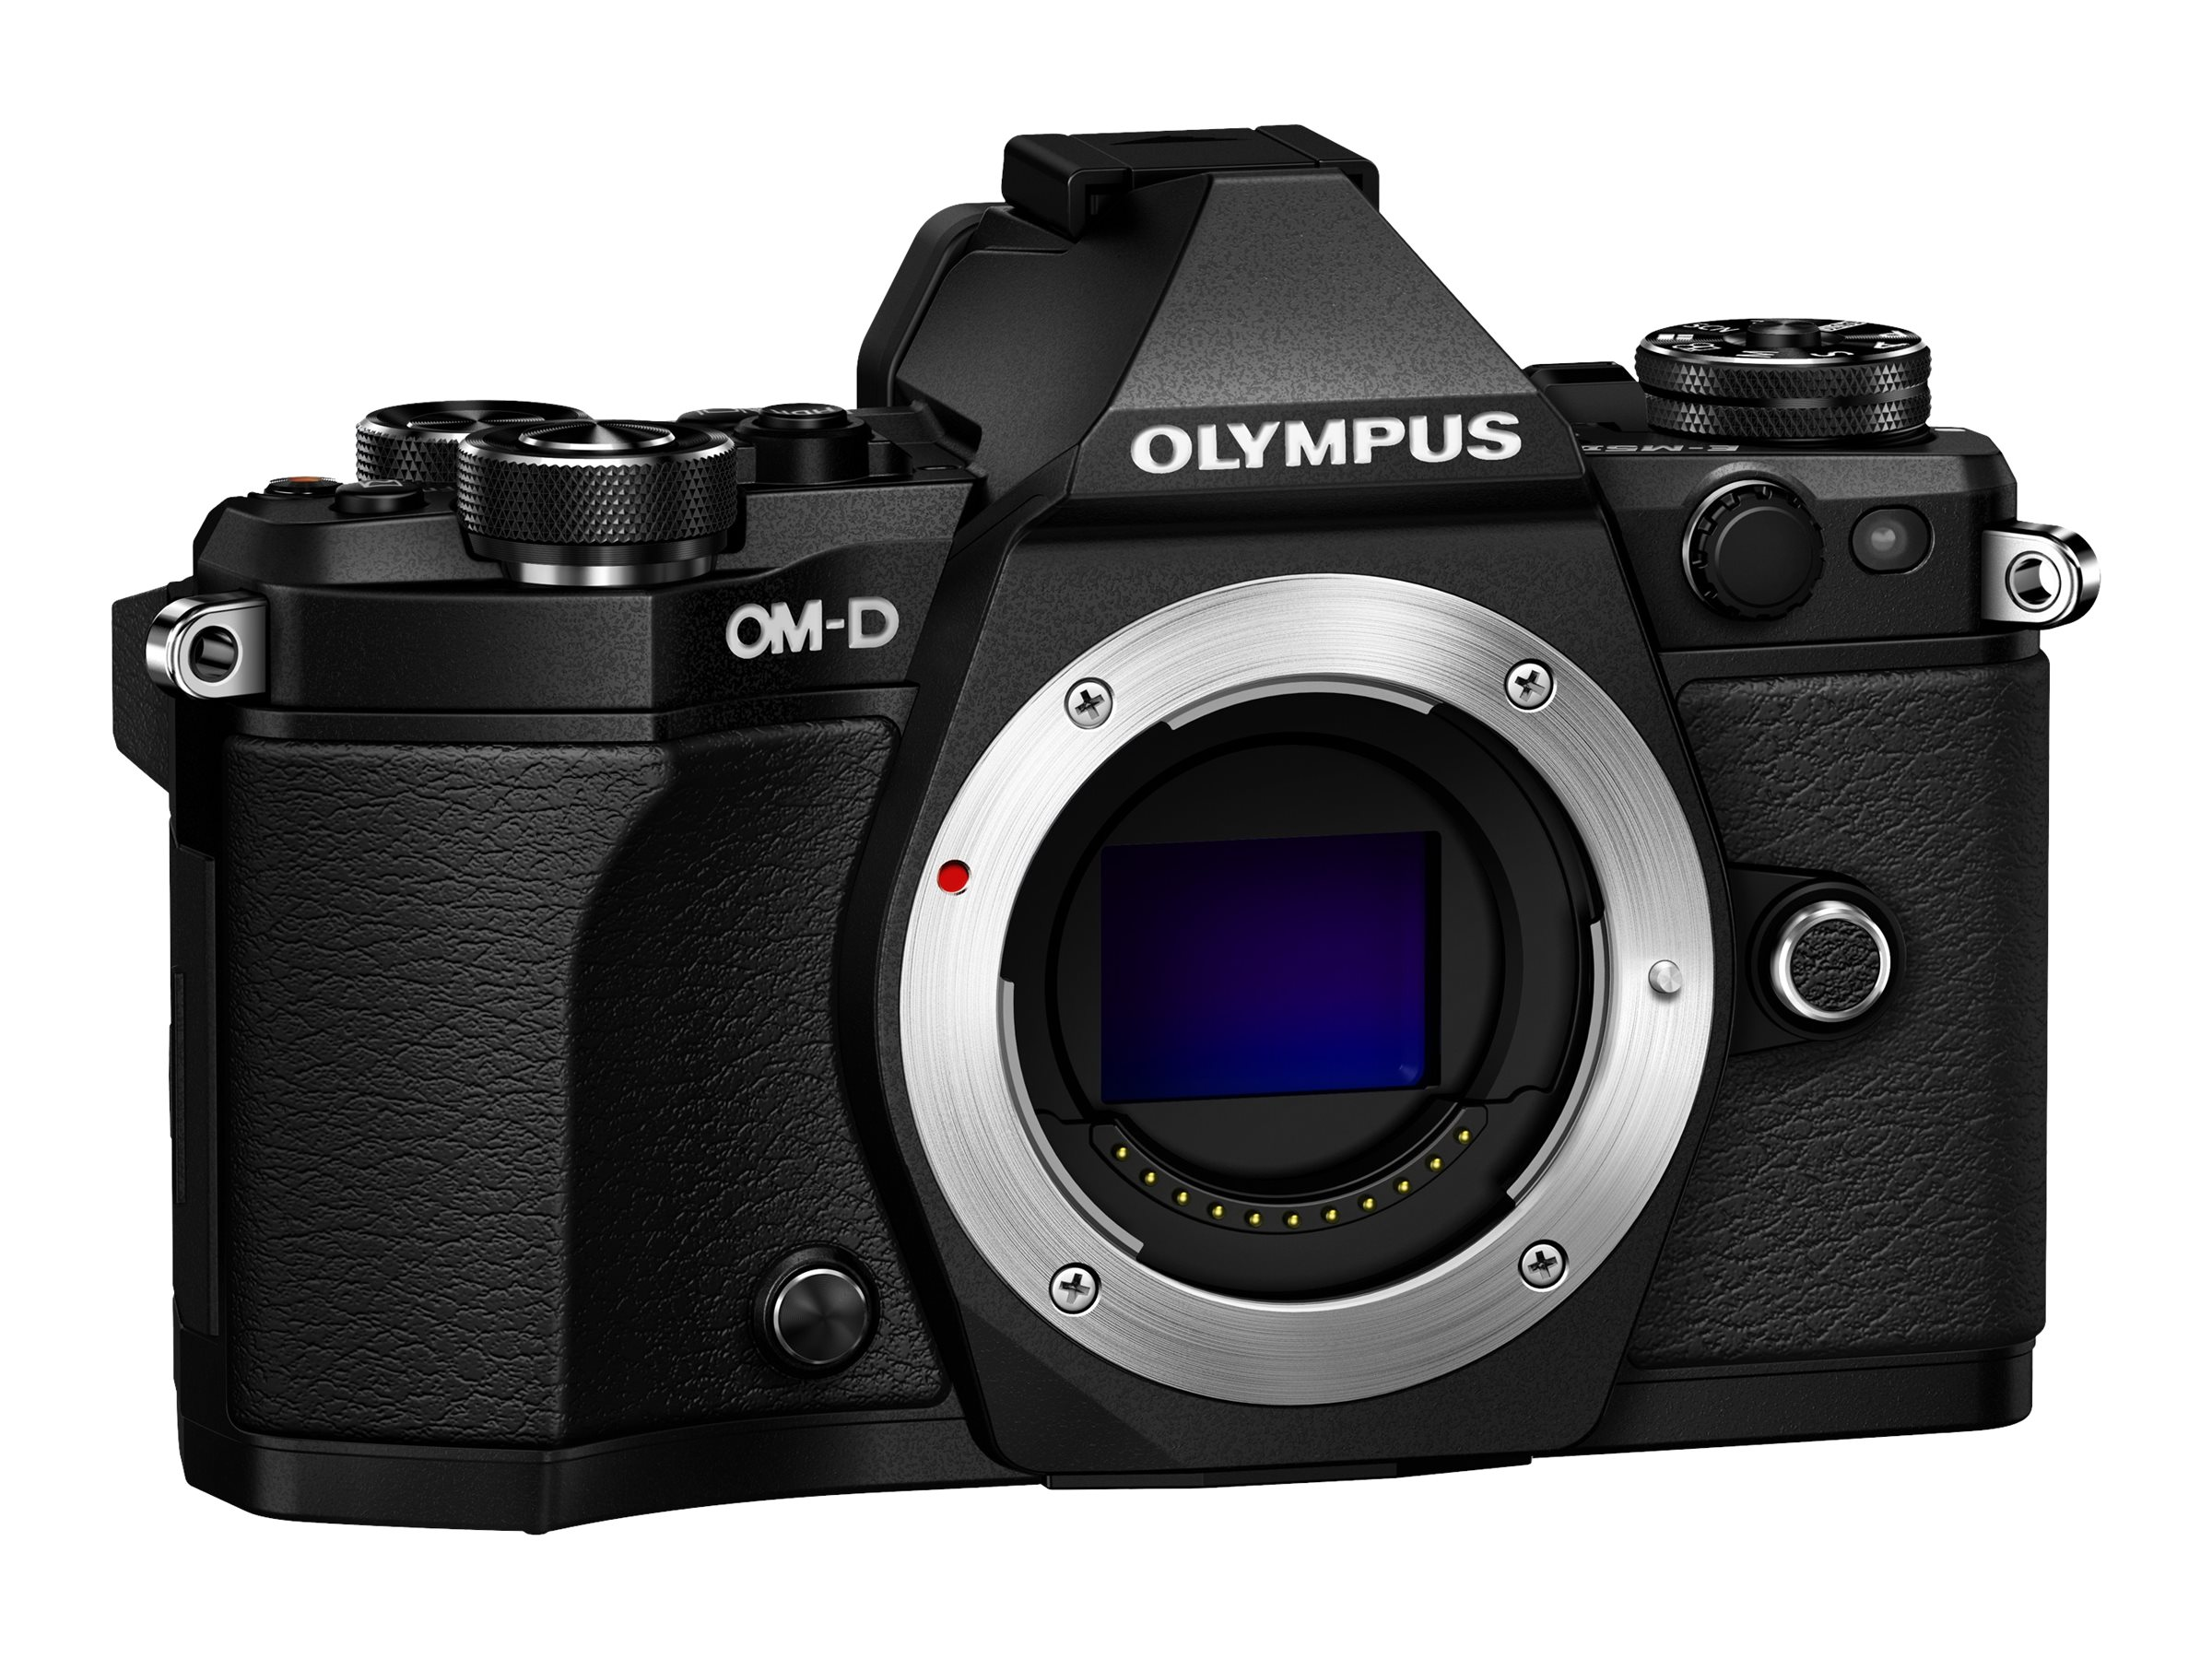 Olympus OM-D E-M5 Mark II Mirrorless Micro Four Thirds Digital Camera Pro Kit, Black, V207040BU030, 30643031, Cameras - Digital - SLR